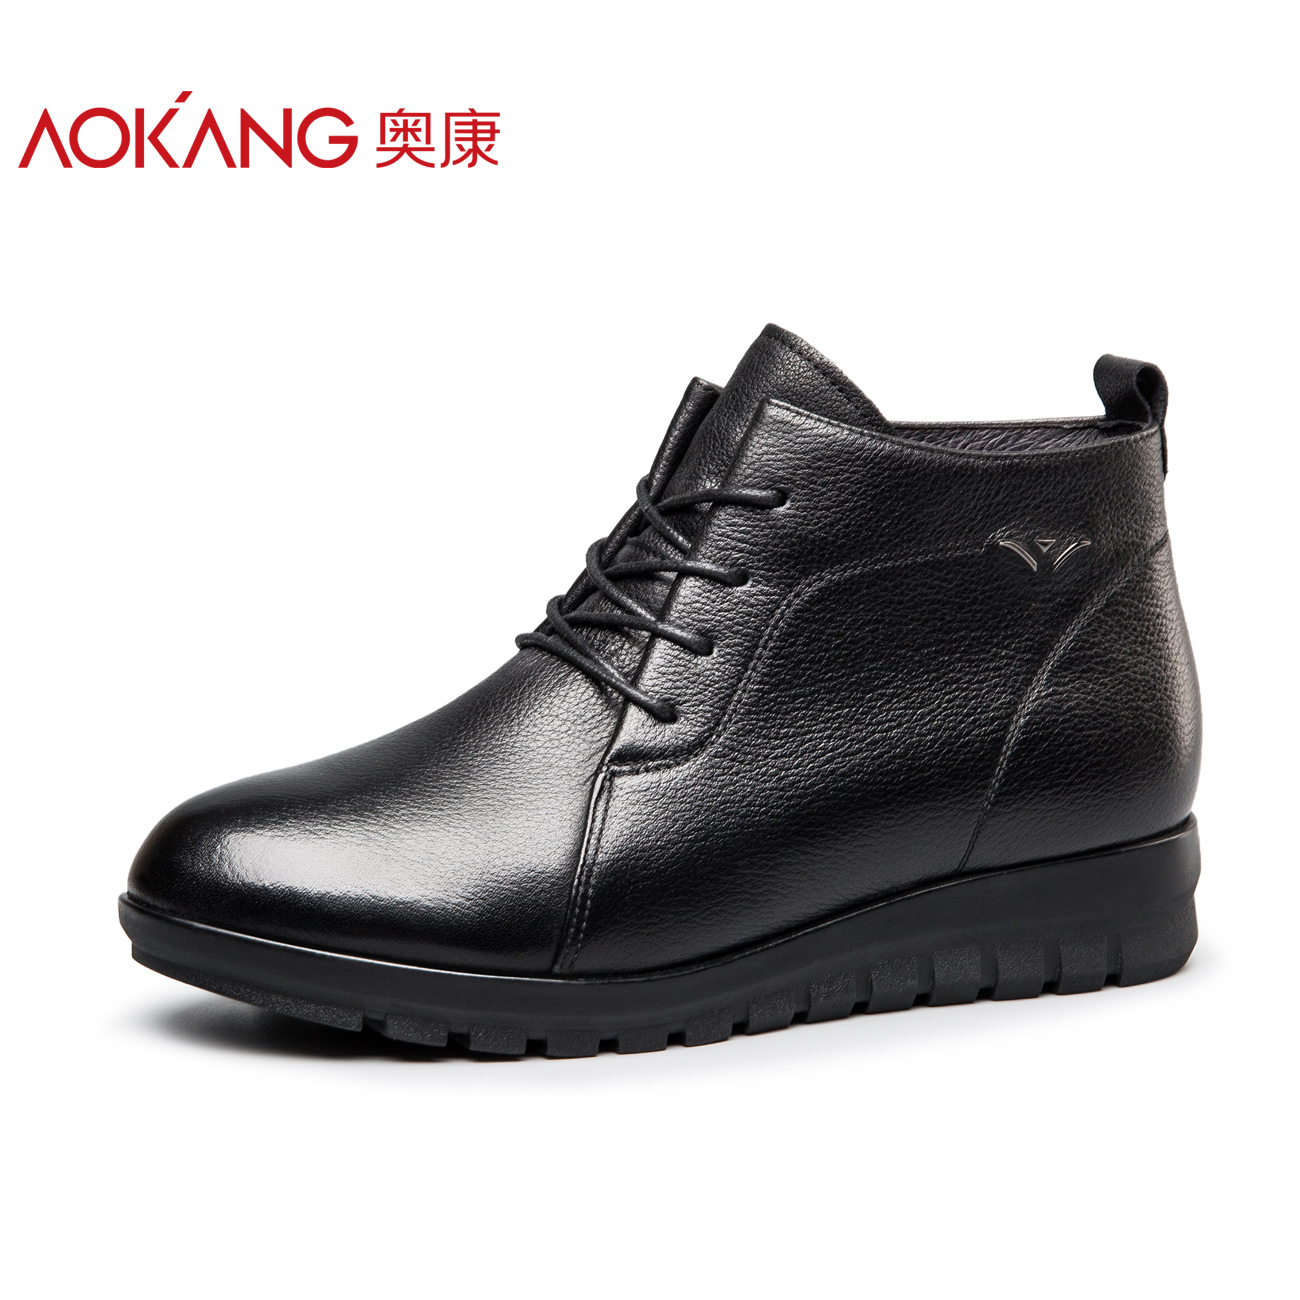 (store shipping) Winter shoes leather mother cotton shoes plus velvet warm anti-skid high help flat bottom comfortable ao kang women's shoes